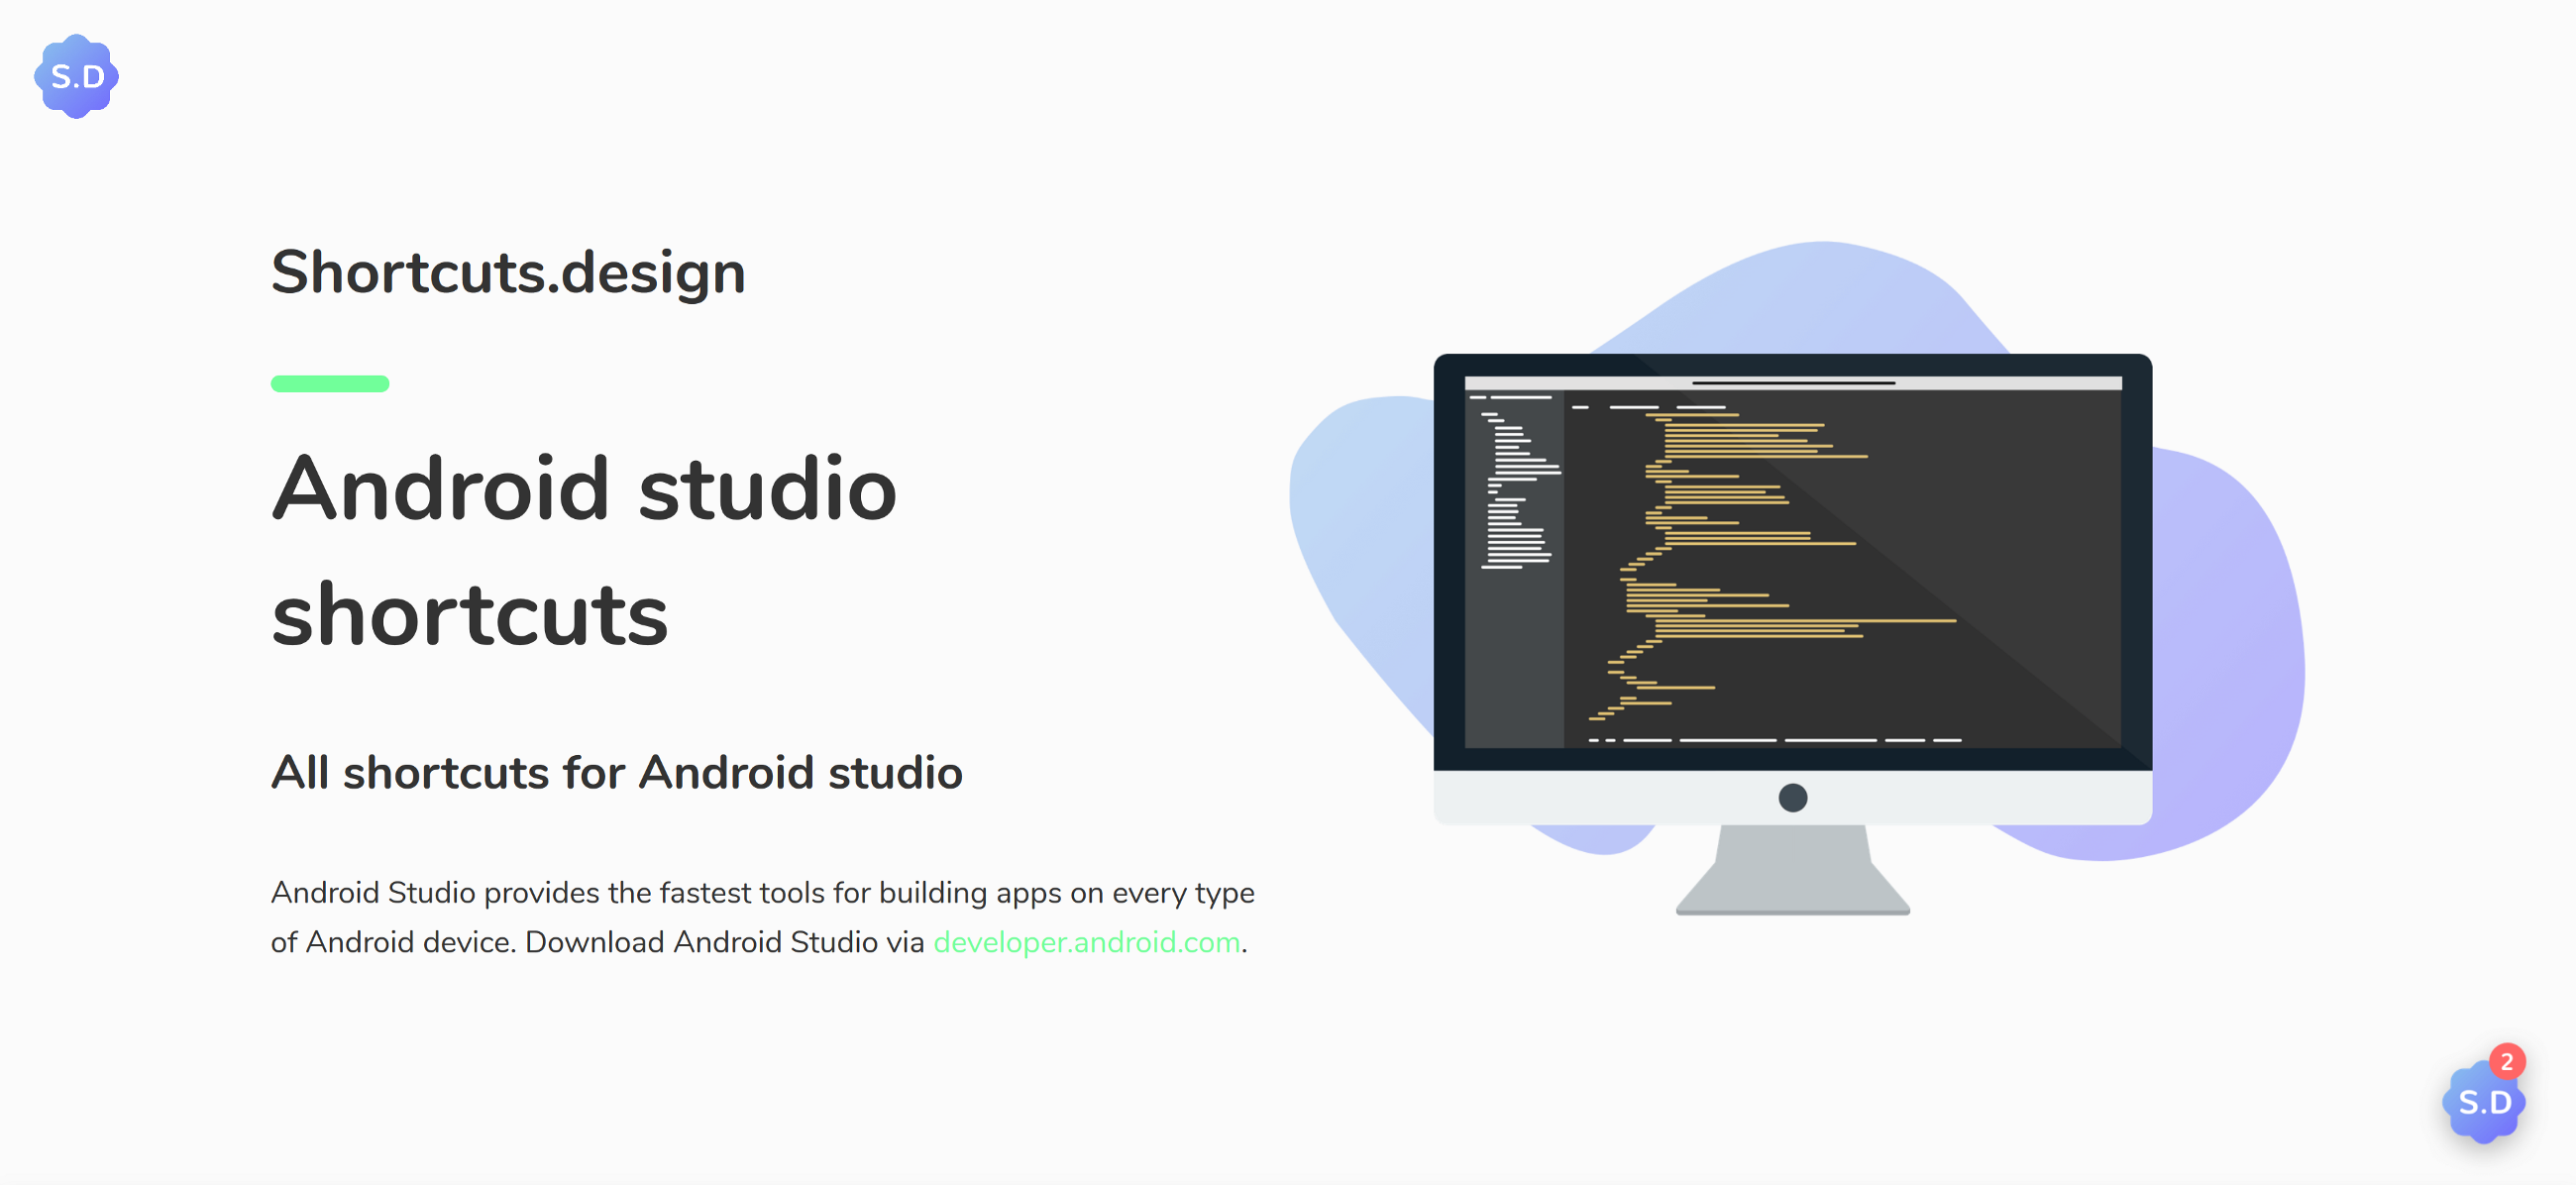 /a-tale-of-shortcuts-for-android-studio-a-quick-pull-request-6f6487d5739c feature image